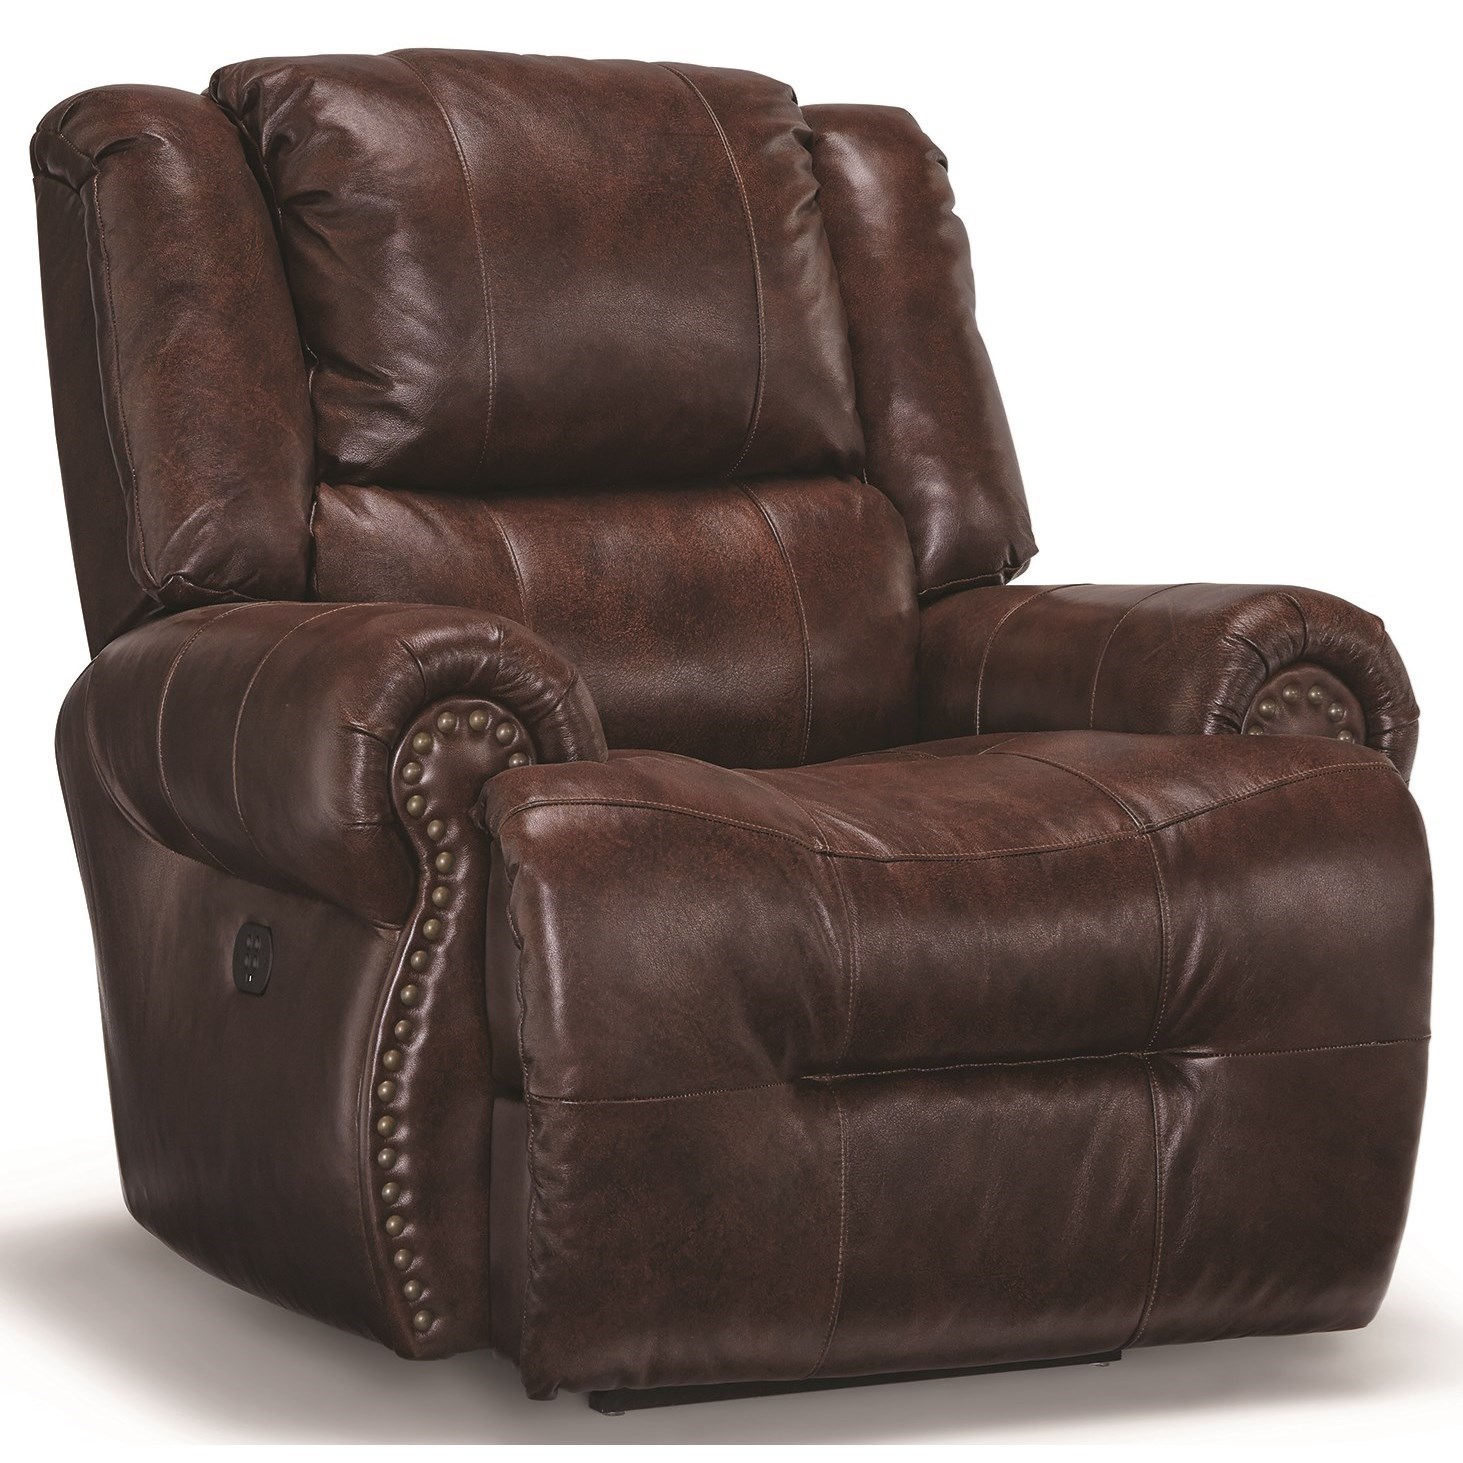 Genet Swivel Glider Recliner by Best Home Furnishings at Pilgrim Furniture City